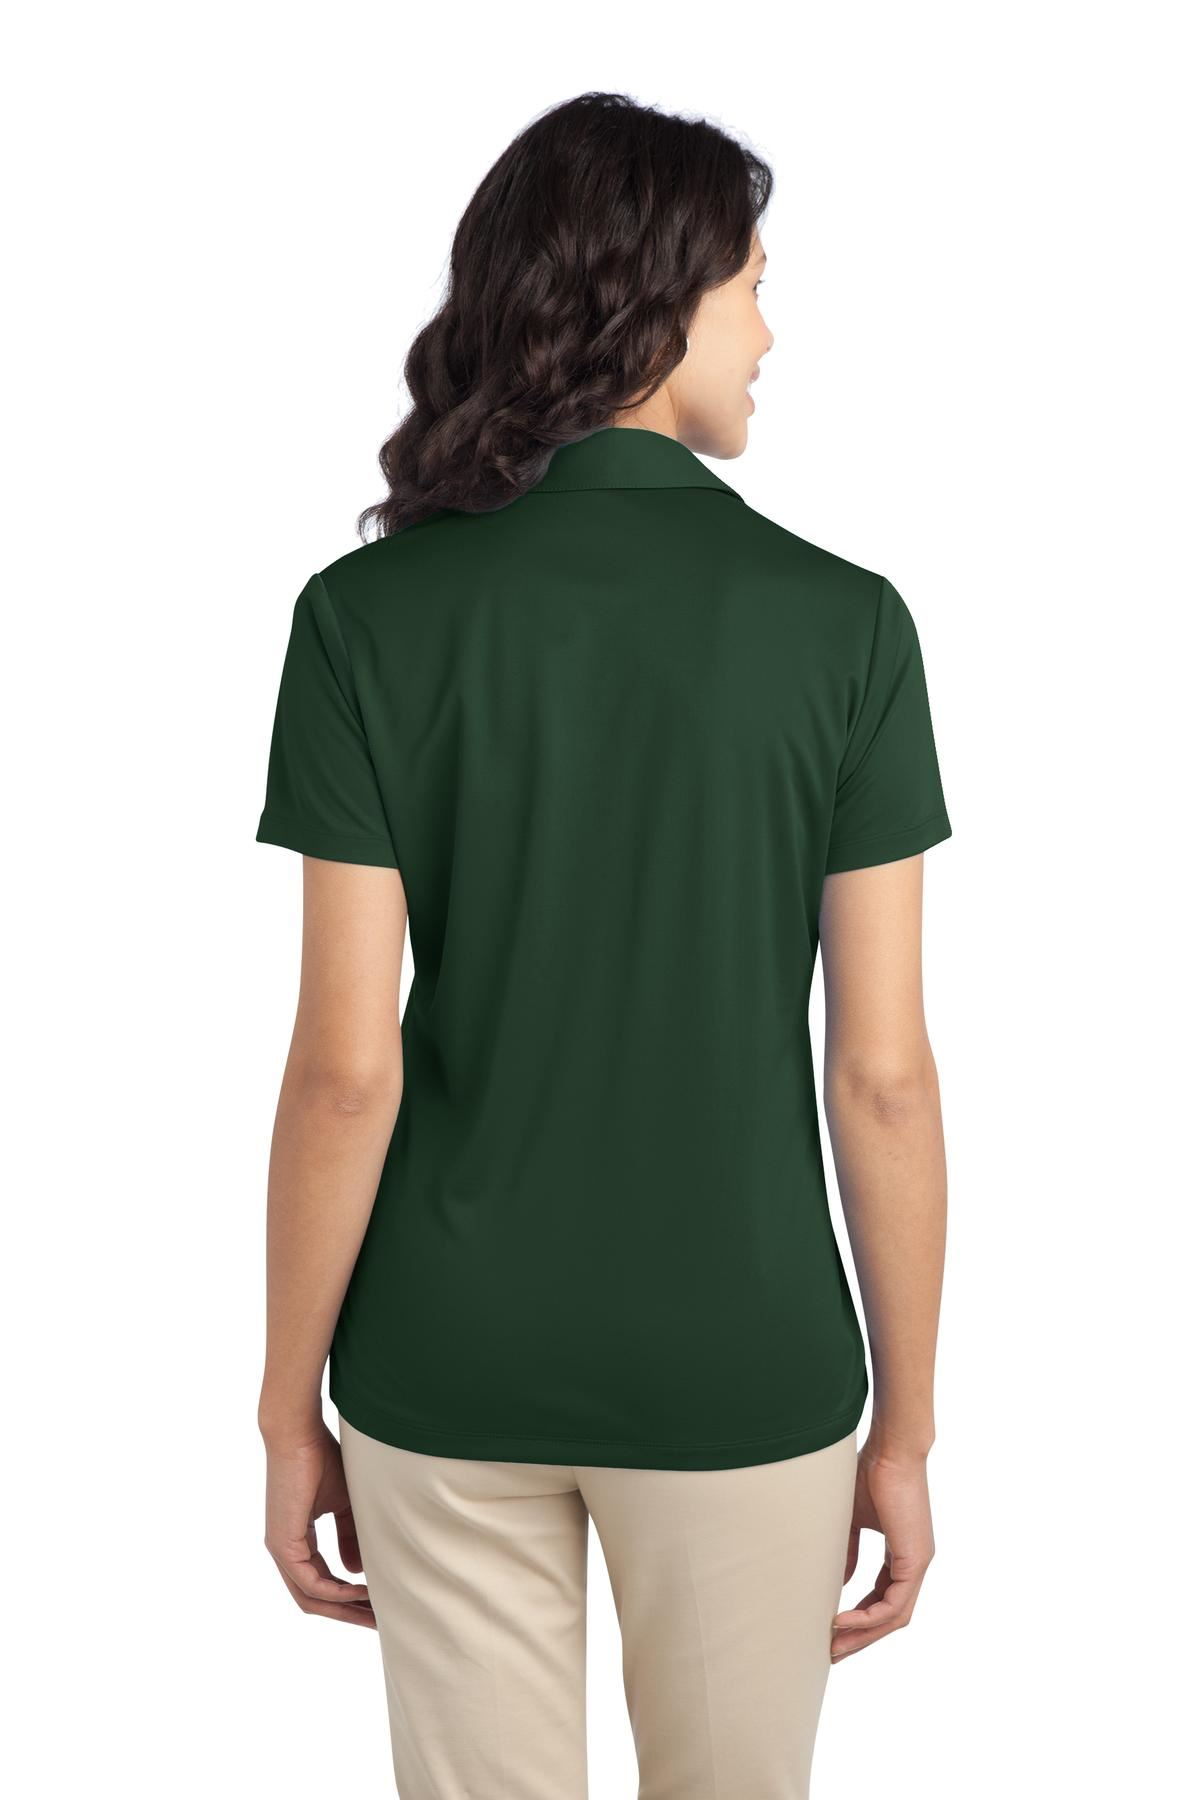 Port-Authority-Womens-Dri-Fit-SIlk-Touch-Performance-Polo-Golf-Shirt-M-L540 thumbnail 13